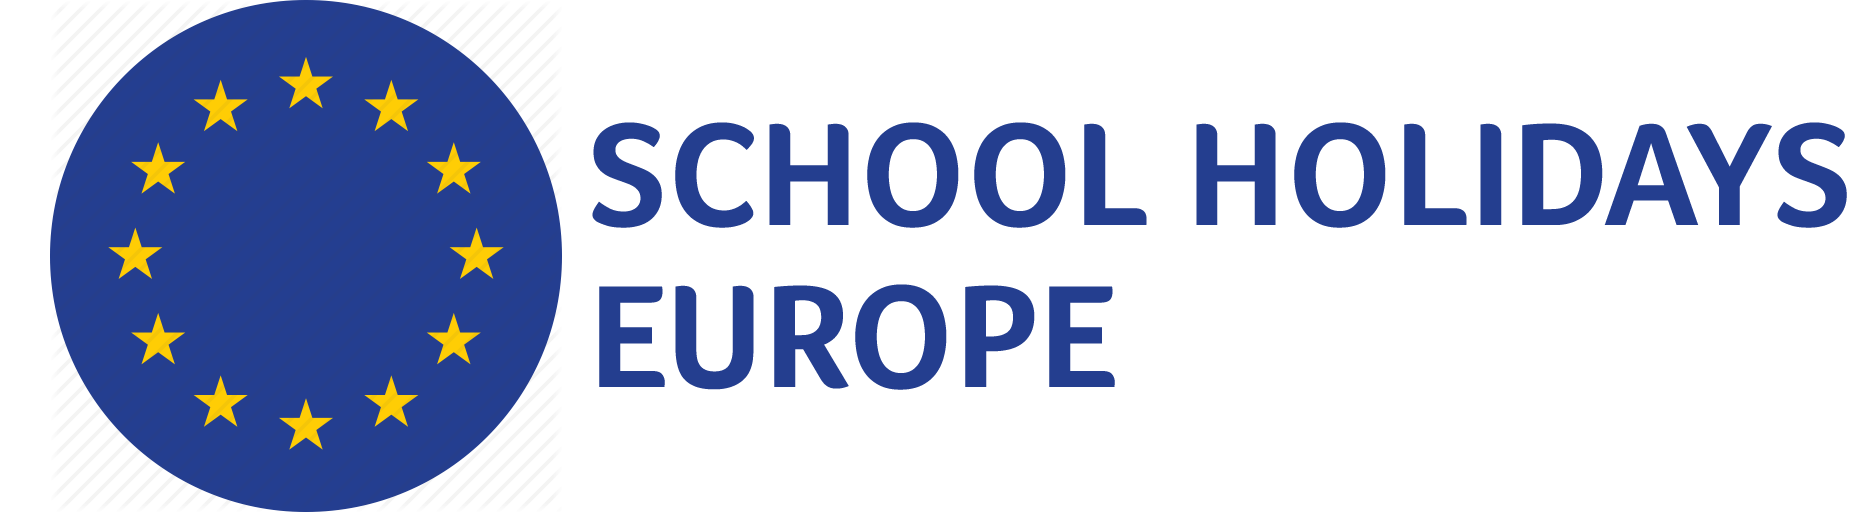 School Holidays 2018 UK ⋆ Schoolholidays Europe